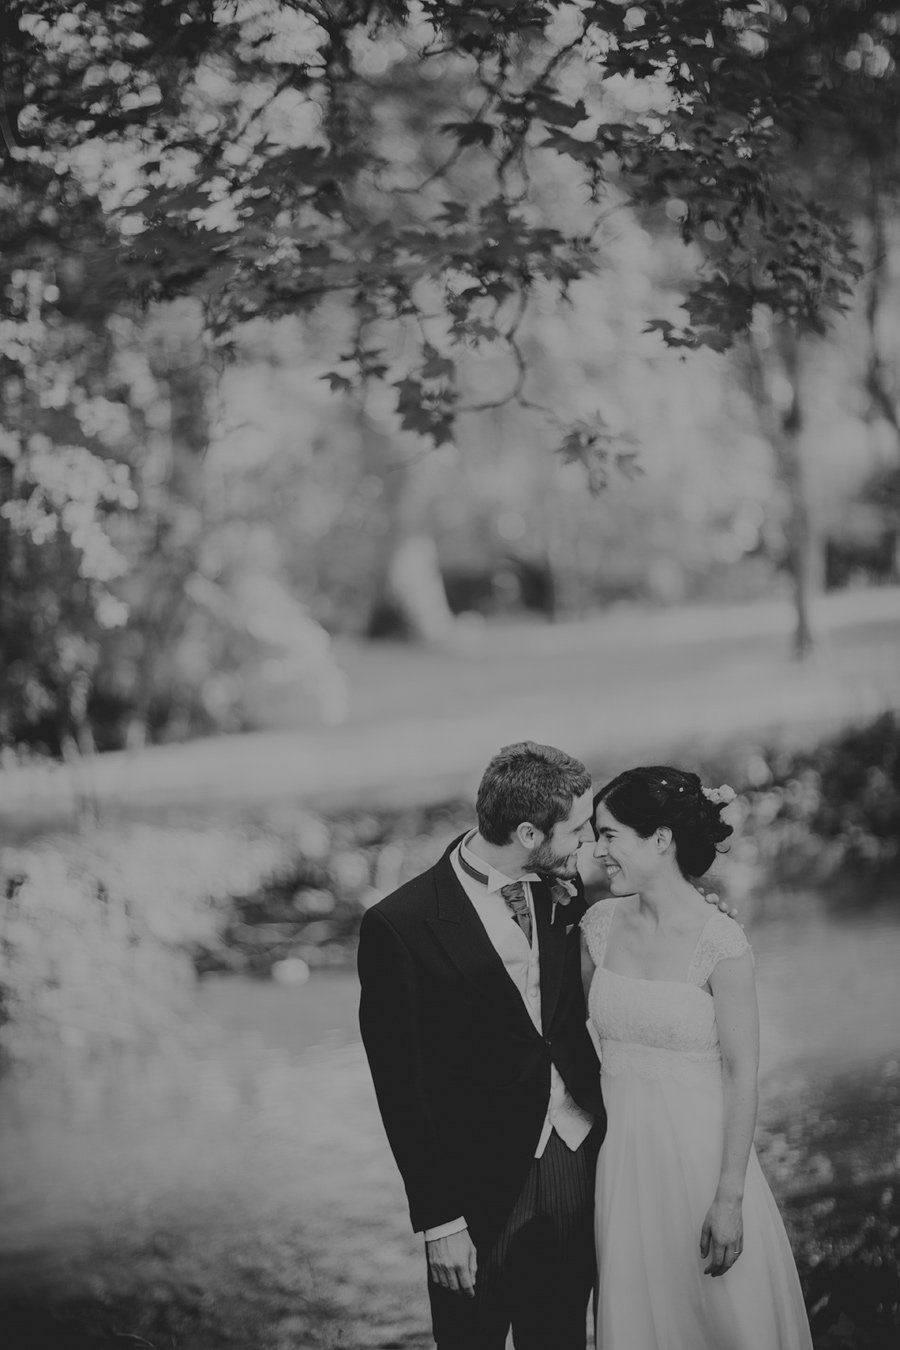 Notley-Abbey-Wedding-Photographer-Ari-and-Matt-62